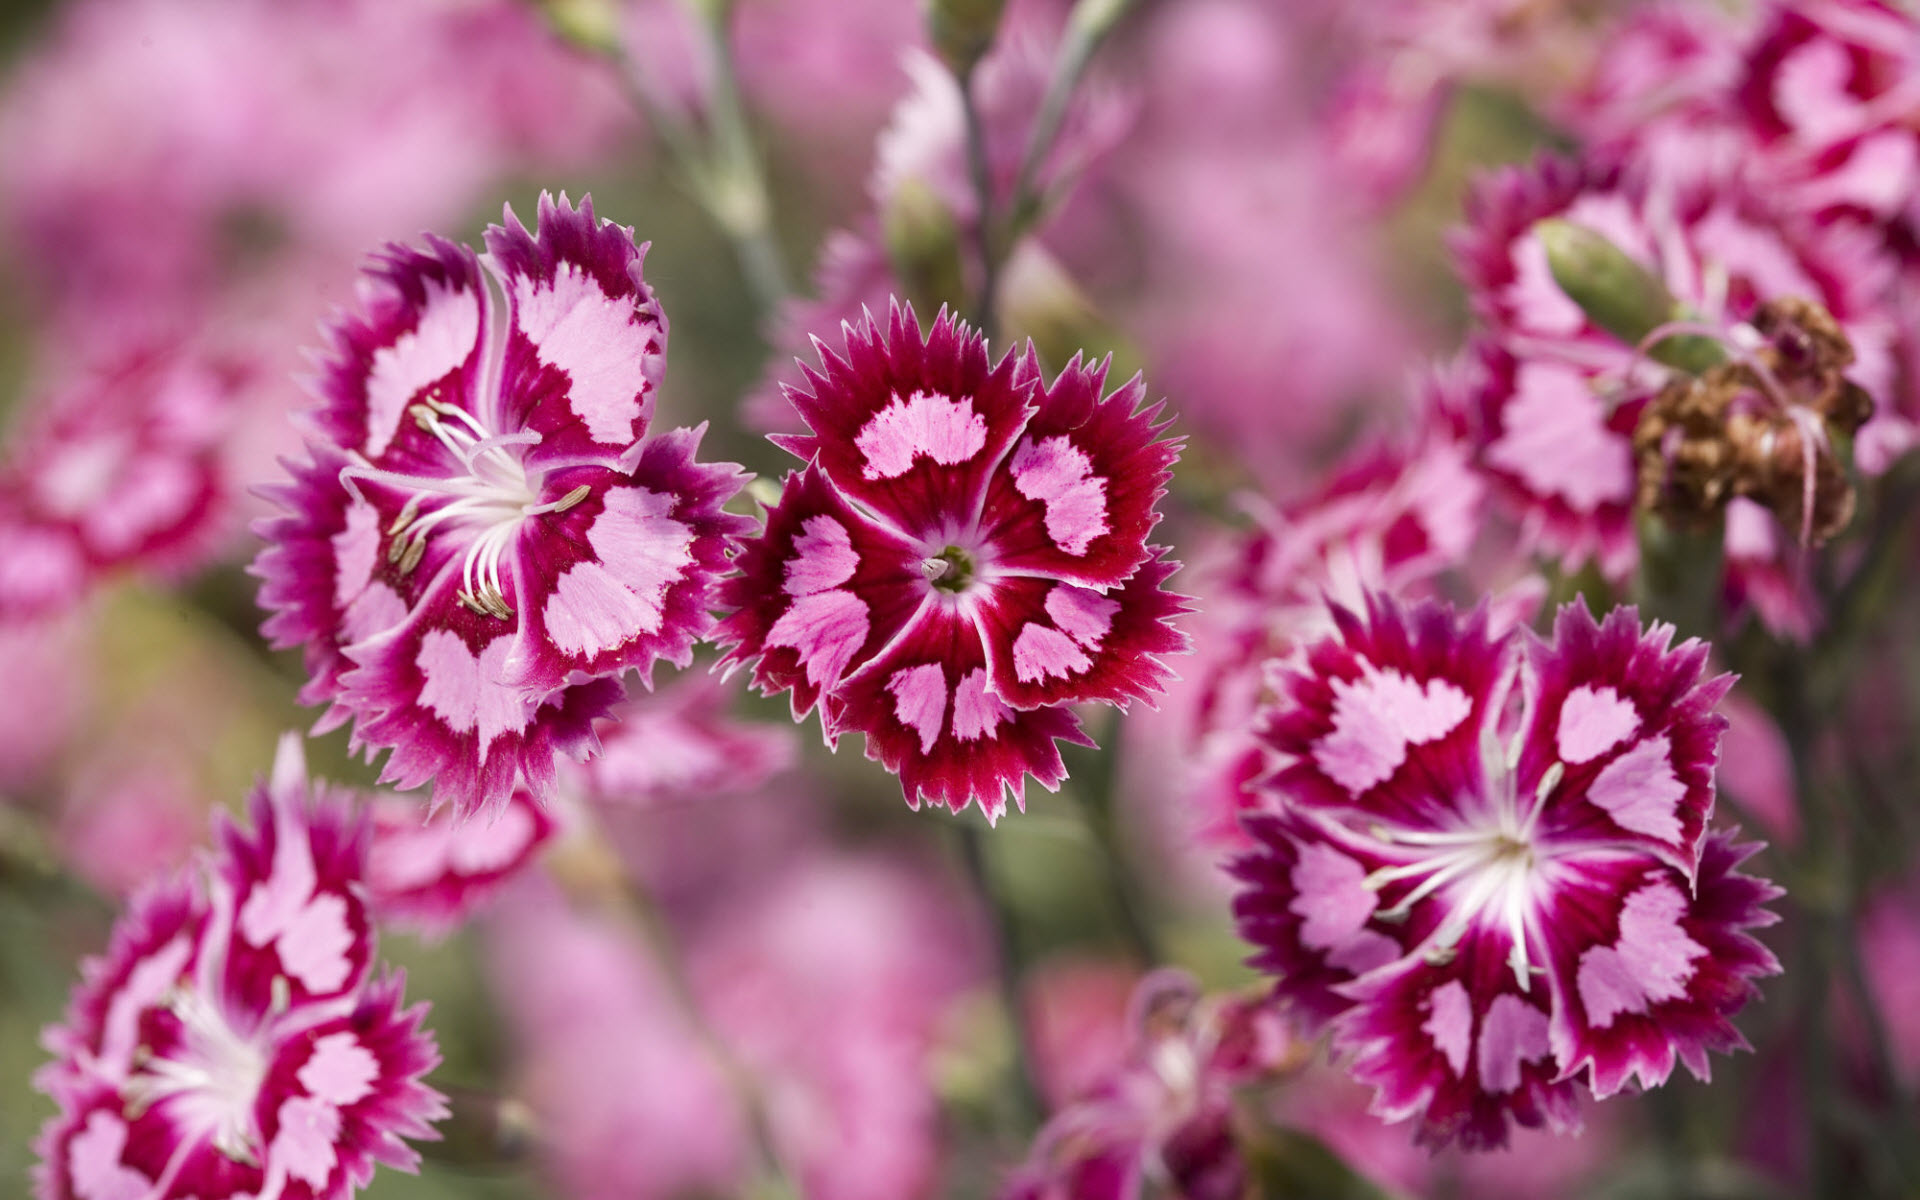 Cranberry Ice Dianthus 4206890 1920x1200 All For Desktop 1920x1200